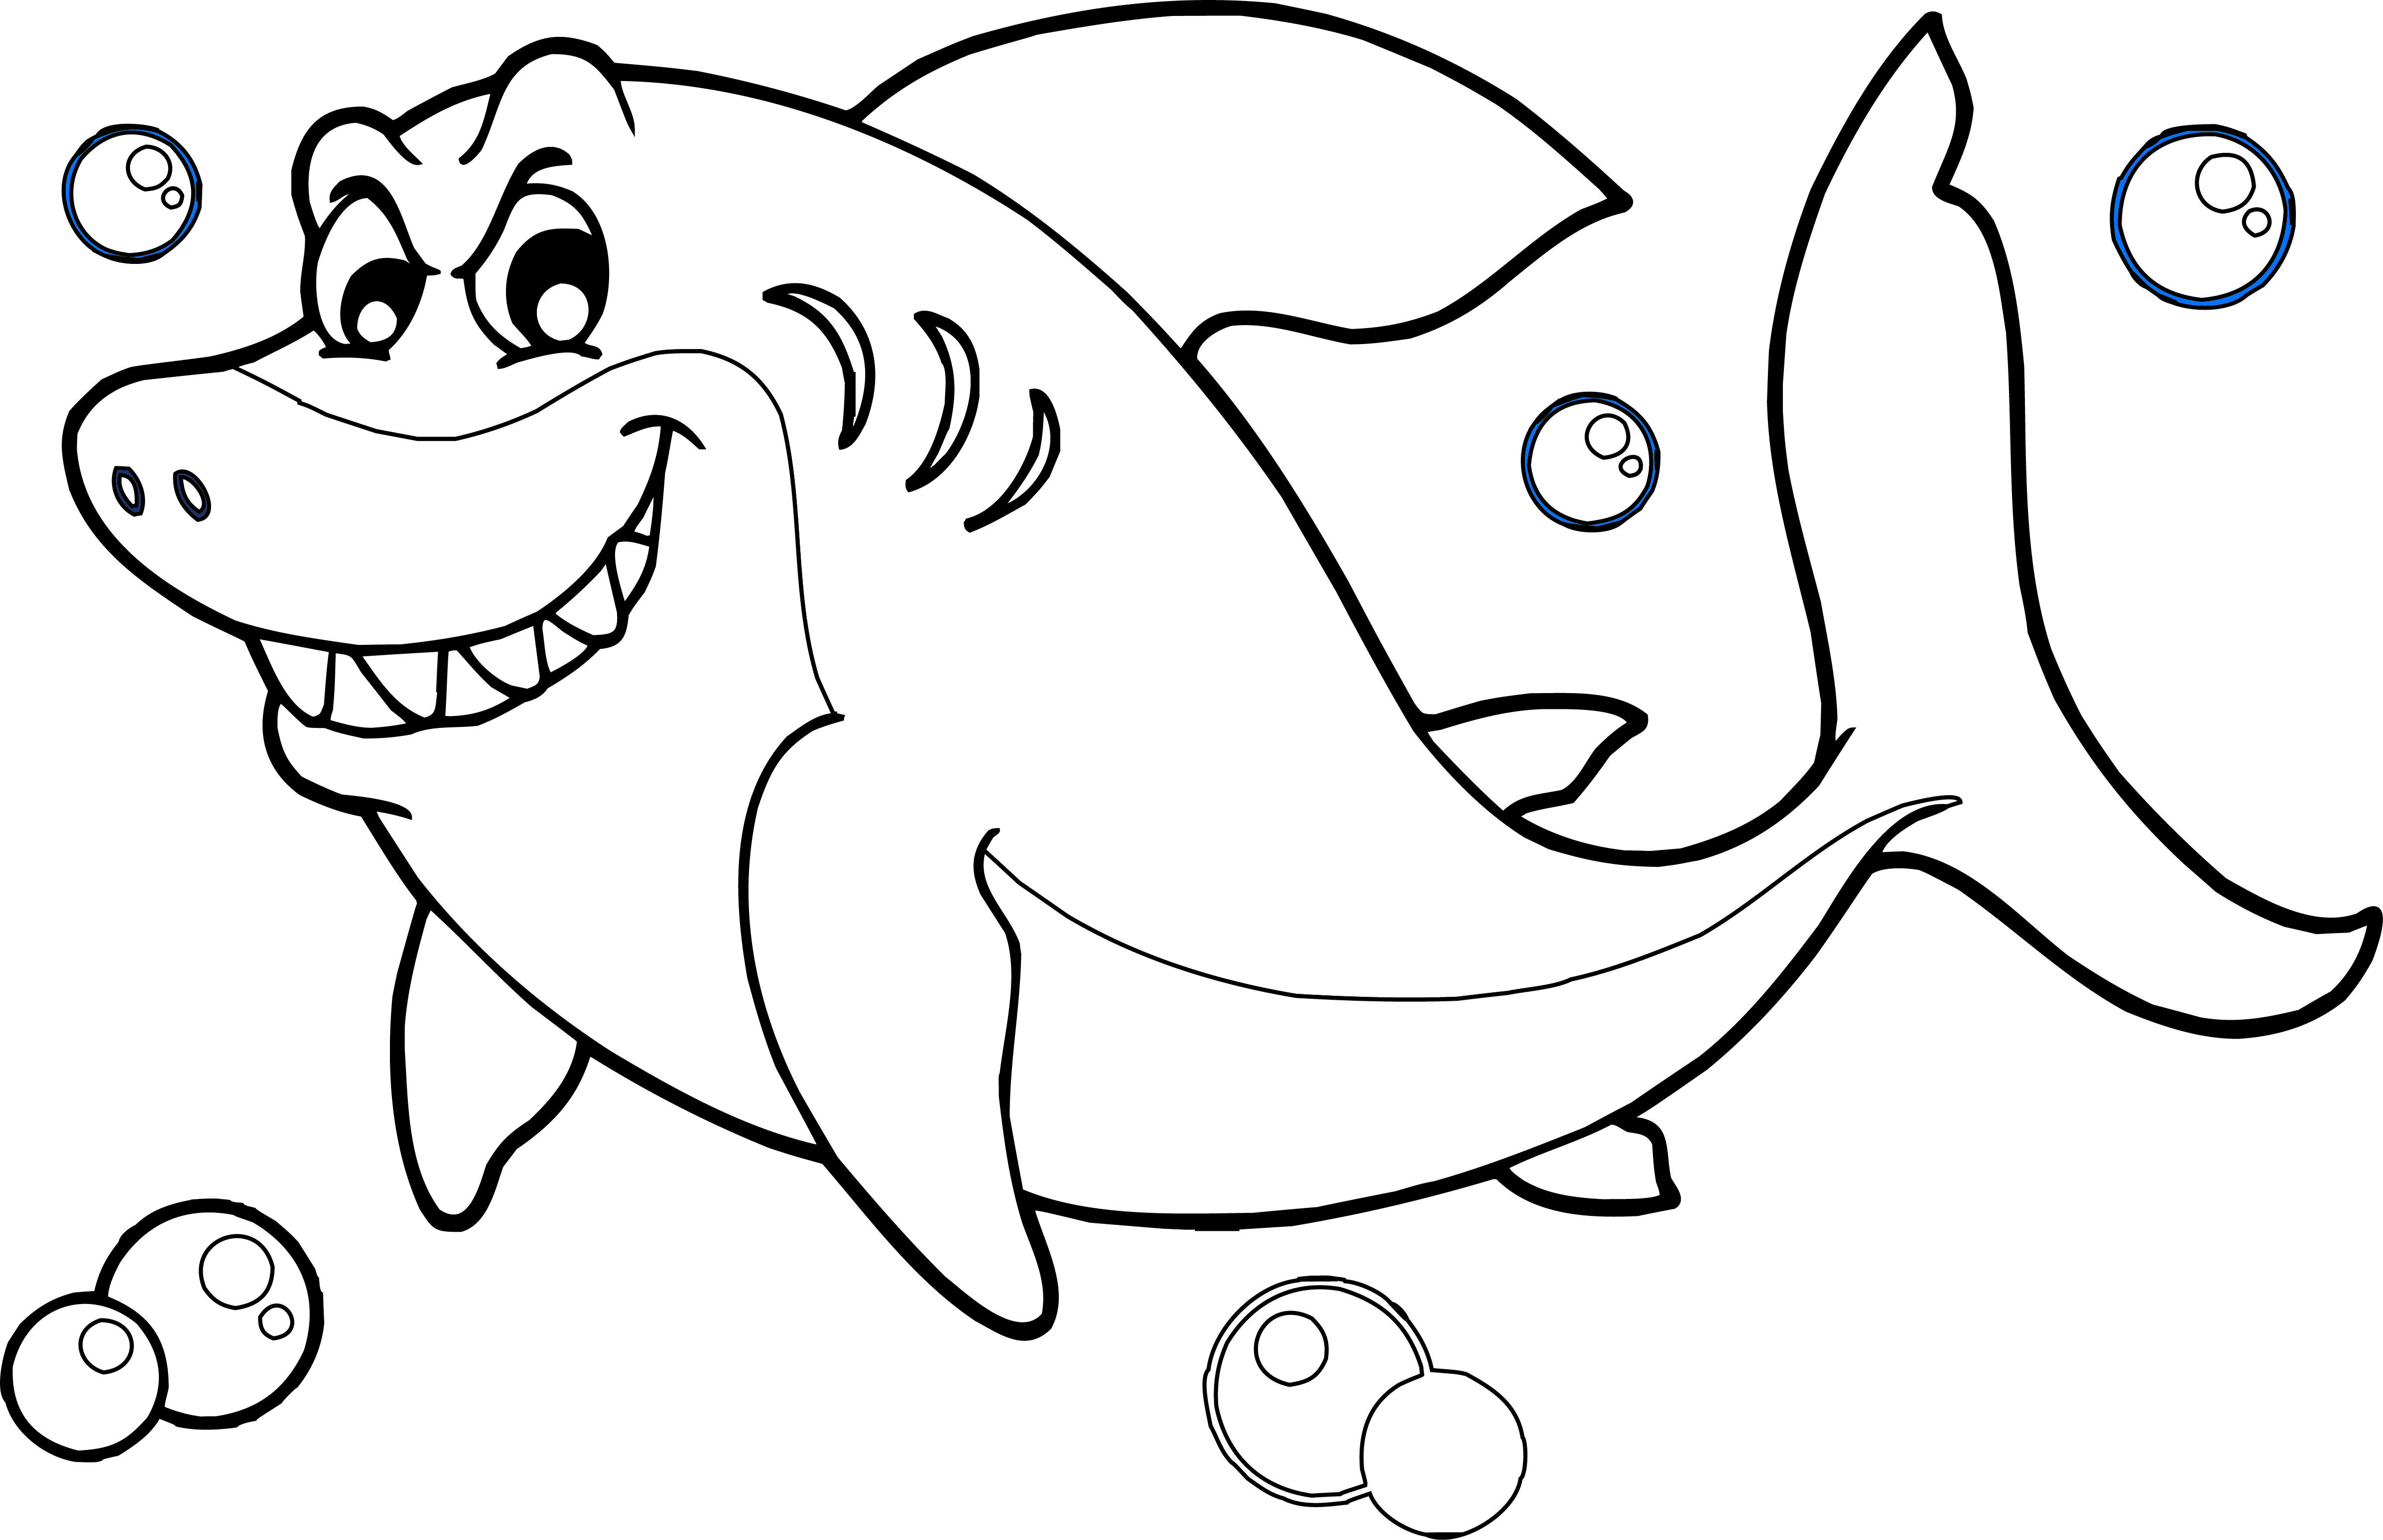 - Shark Coloring Pages Shark Coloring Pages, Coloring Pages